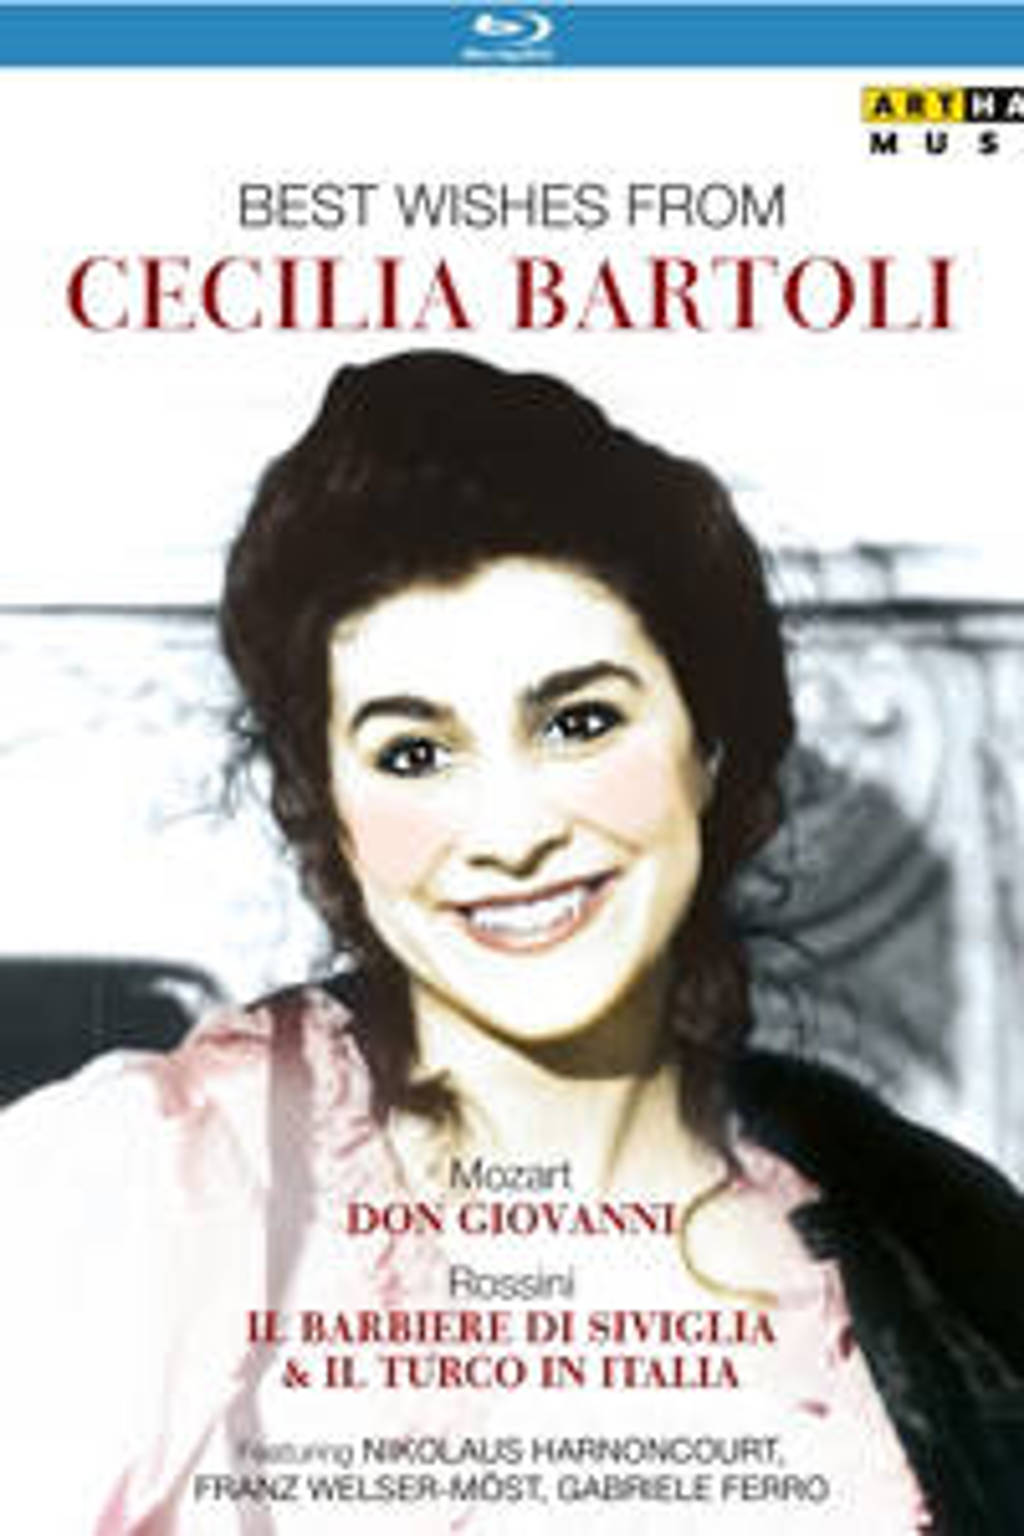 Bartoli In 3 Opera's - Best Wishes From Cecilia Bartoli Br (Blu-ray)